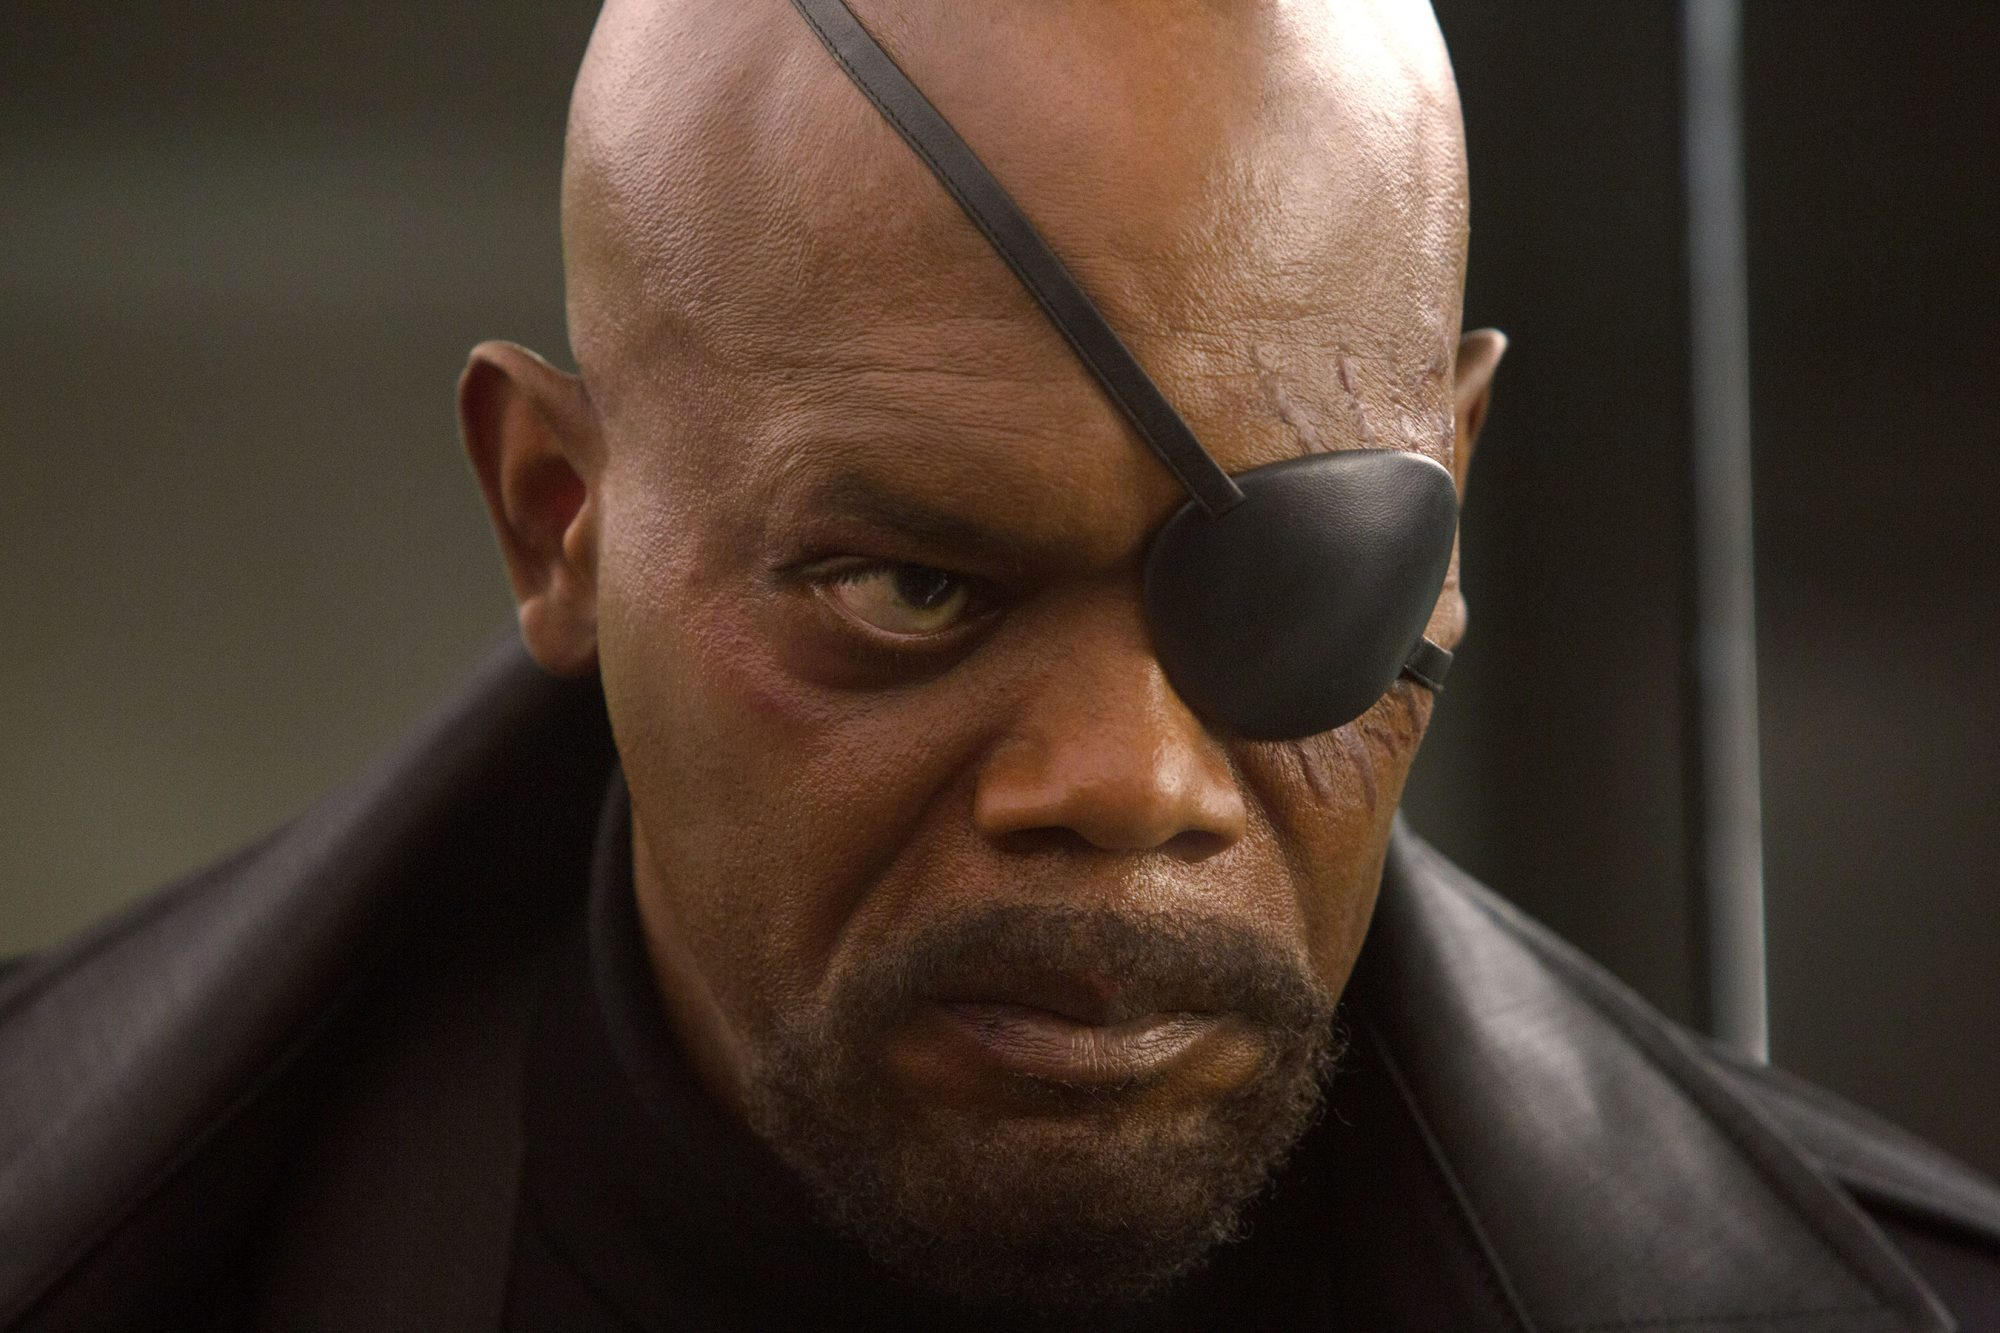 CAPTAIN AMERICA: THE WINTER SOLDIER, Samuel L. Jackson, 2014. ph: Zade Rosenthal/©Walt Disney